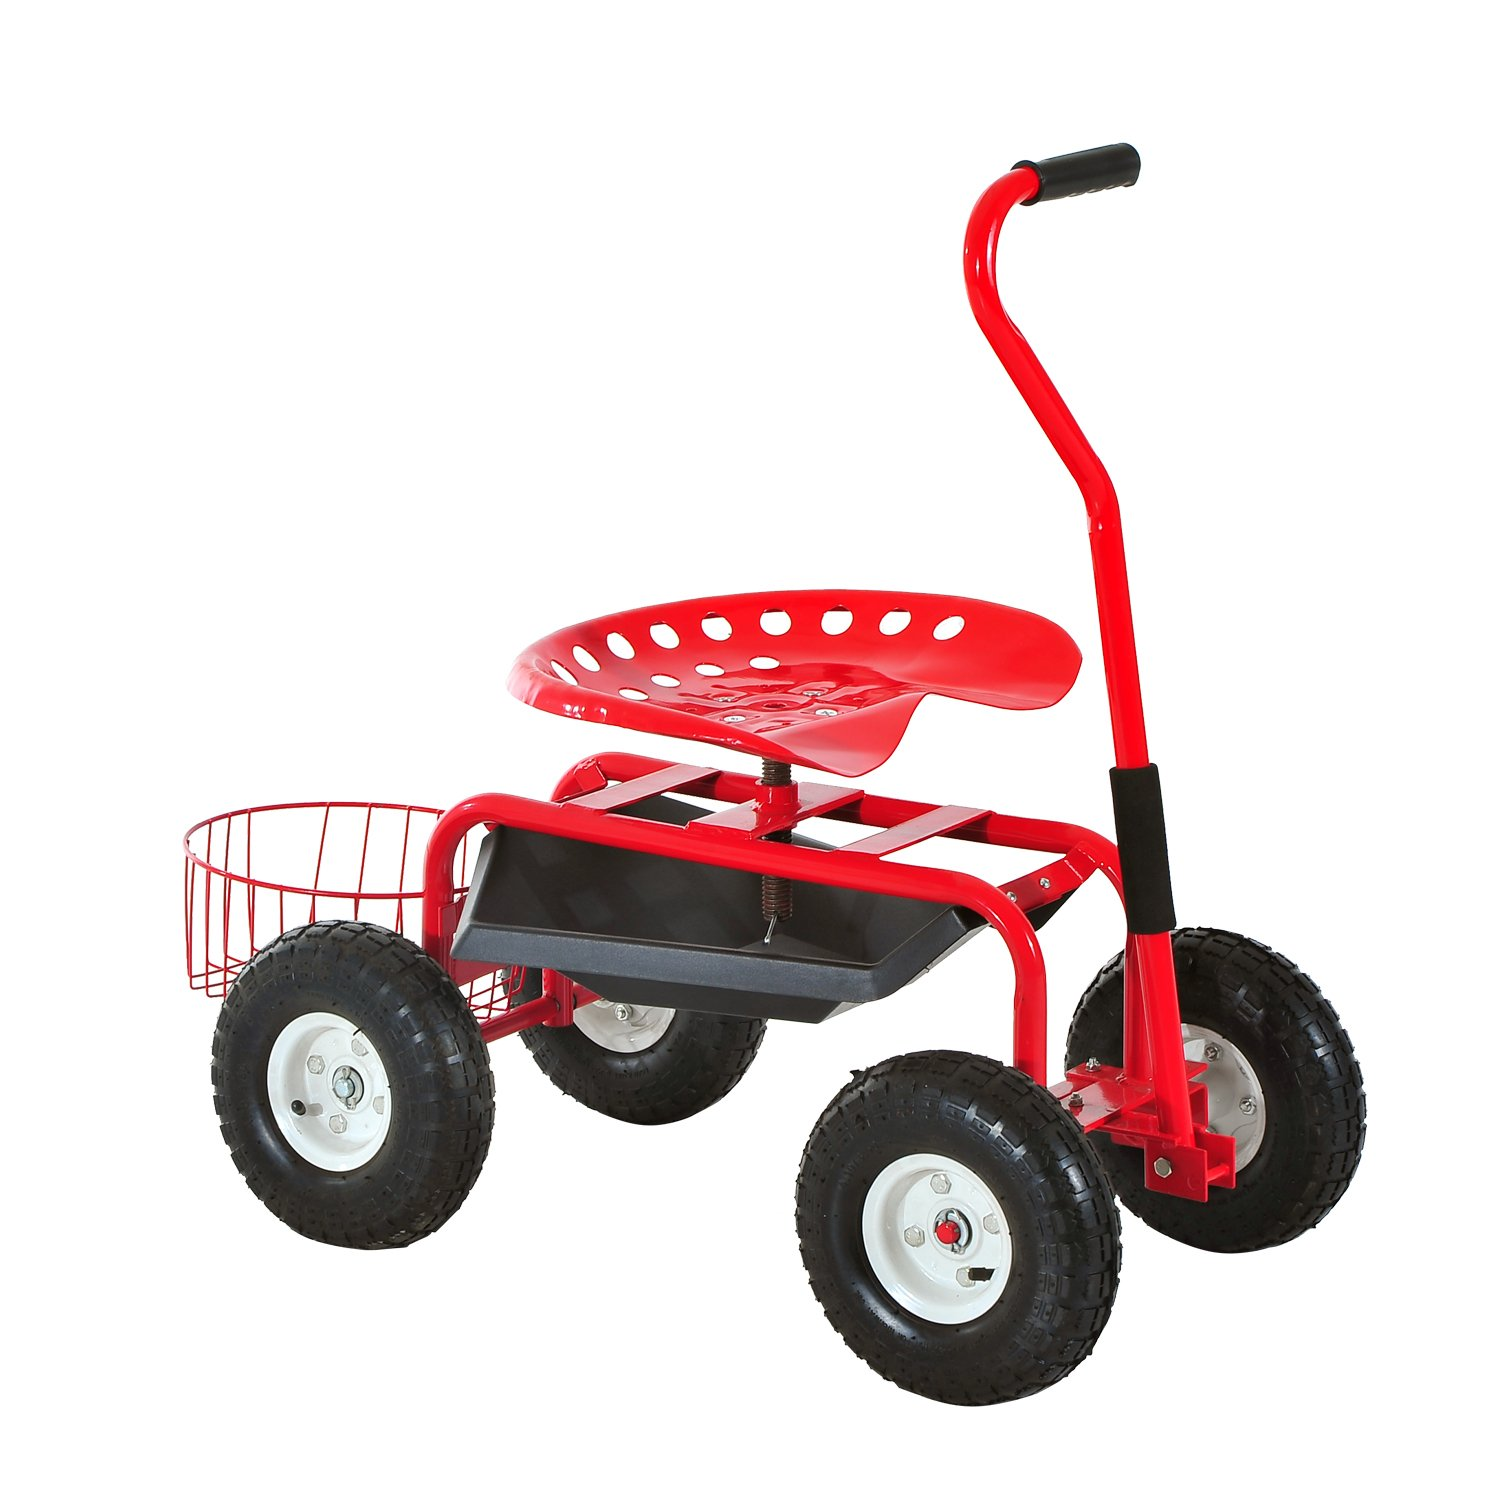 Outsunny Adjustable Rolling Garden Cart Outdoor Gardening Planting Station Trolley Swivel Gardener Work Seat Heavy Duty With Tool Tray & Basket Red 150kg MHSTAR UK 845-029